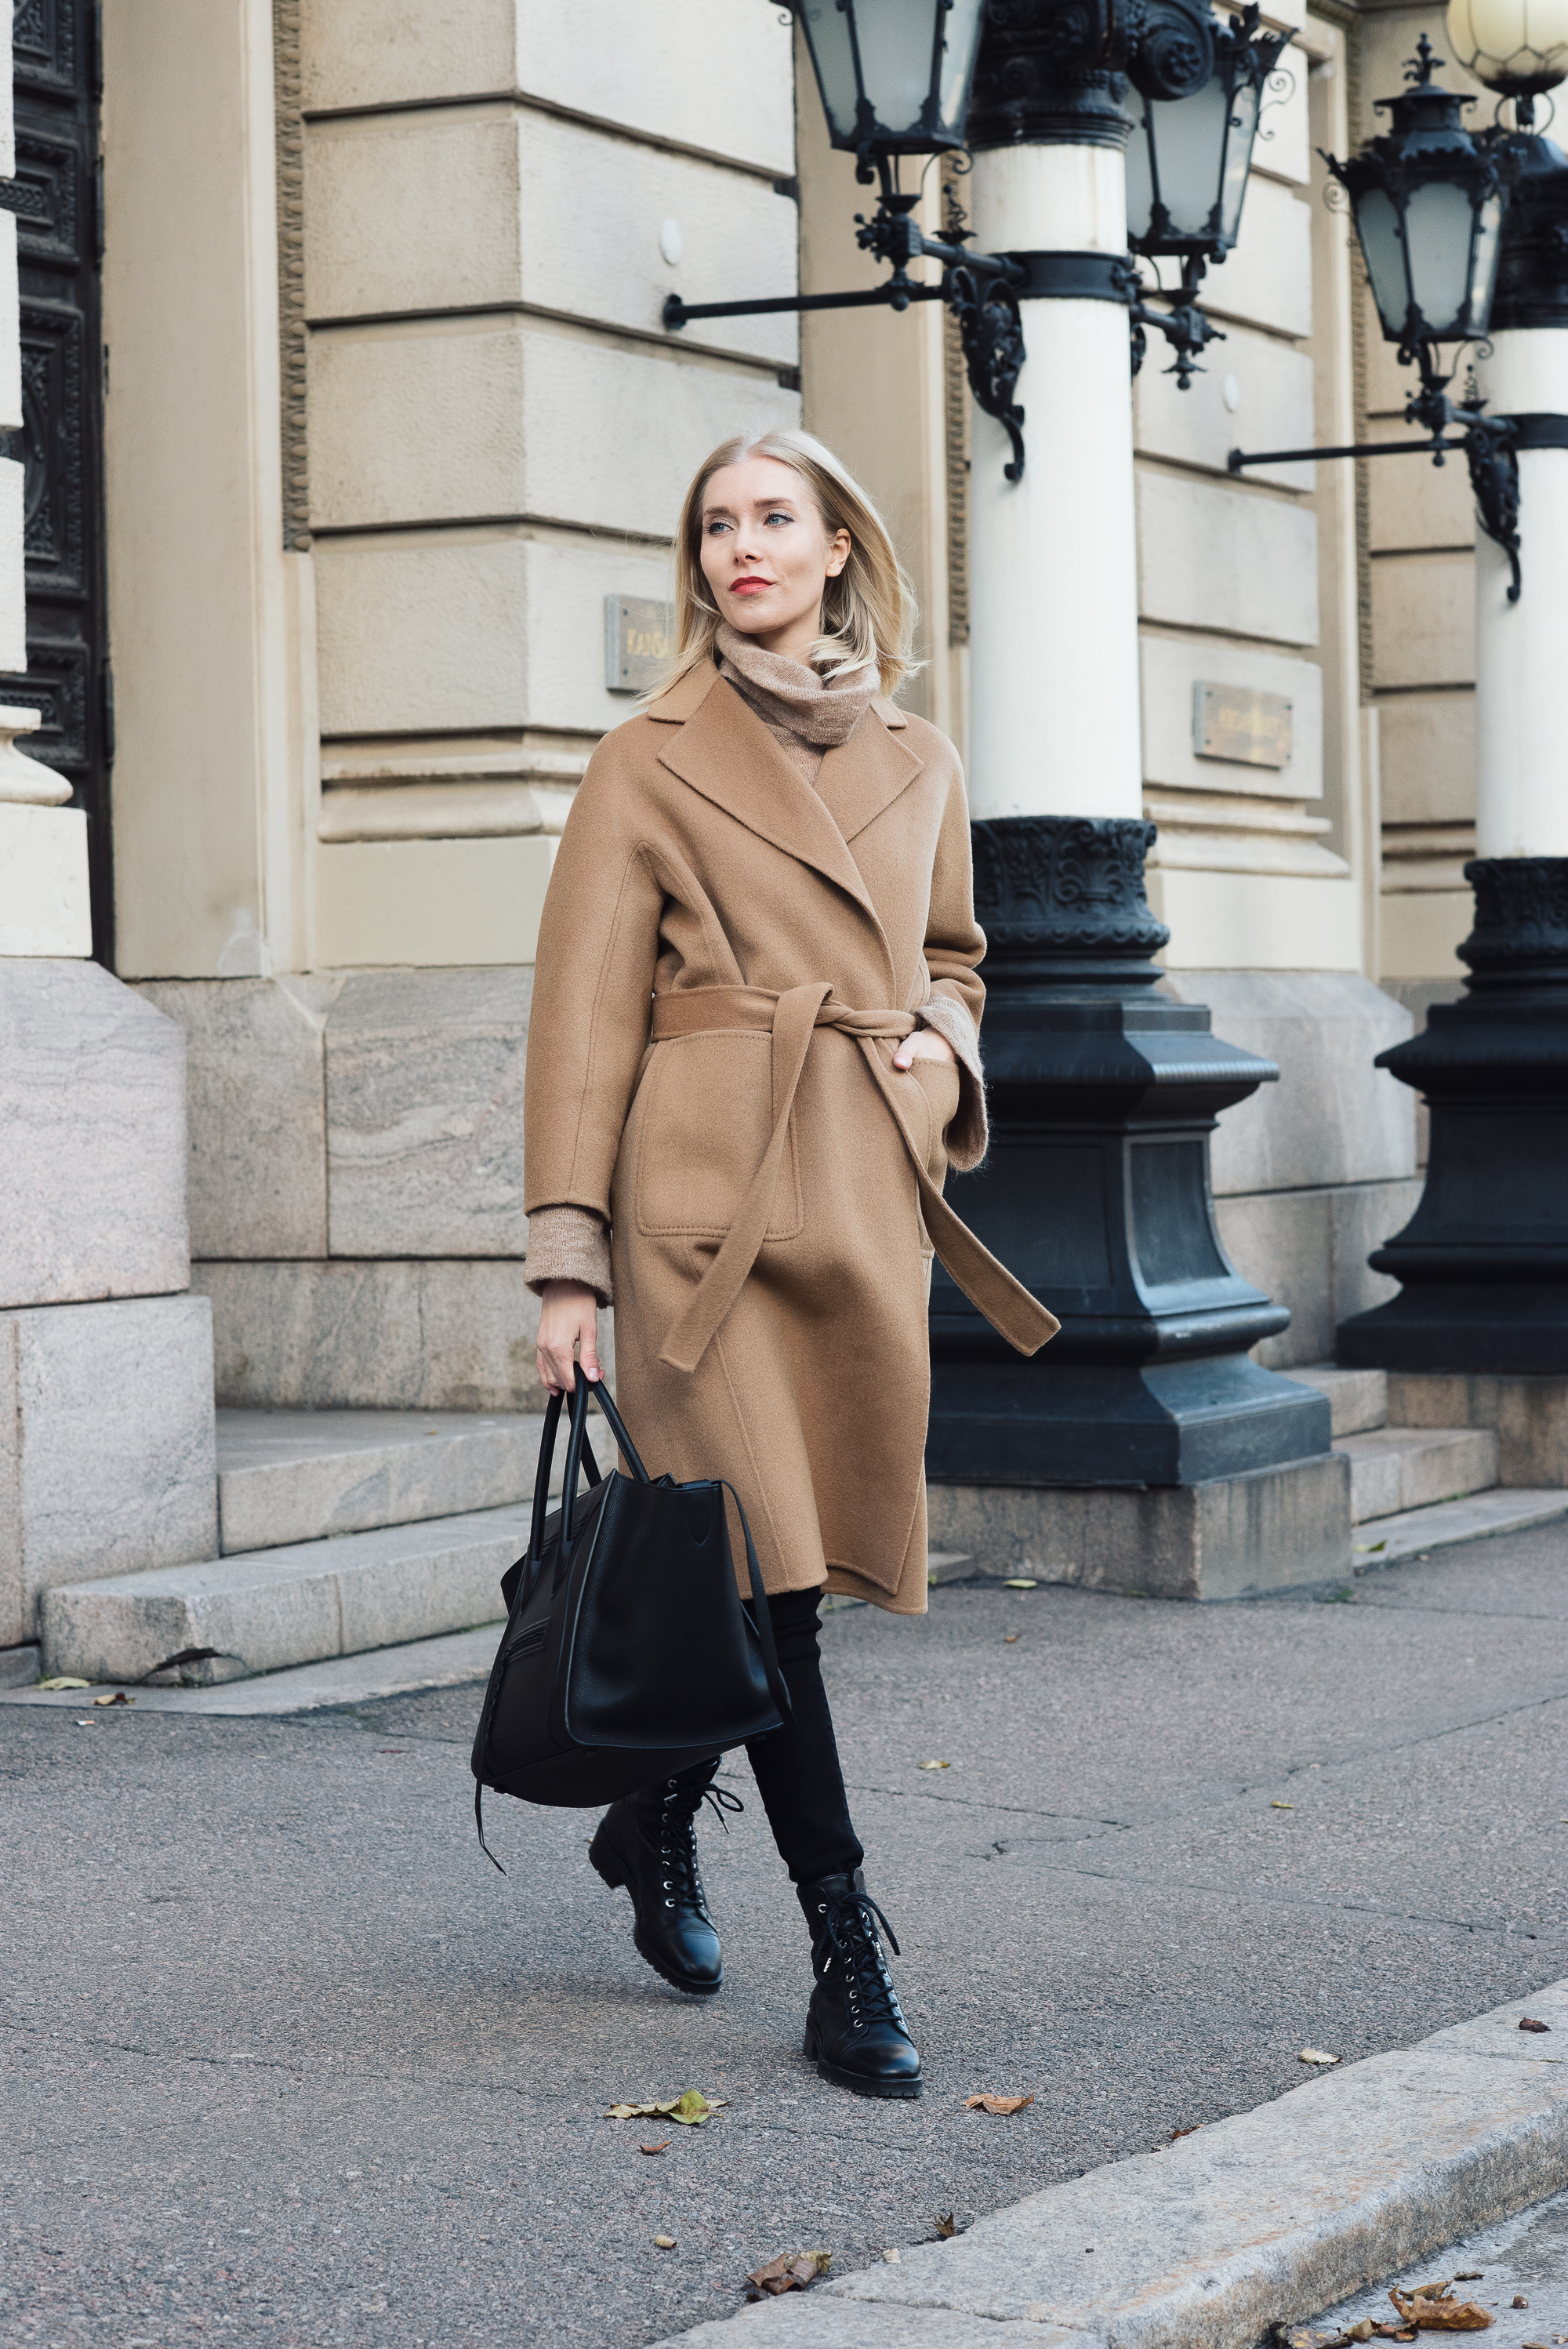 big discount sale high quality materials official store Shothecurated Camel Coat Style Plaza6 - STYLE PLAZA